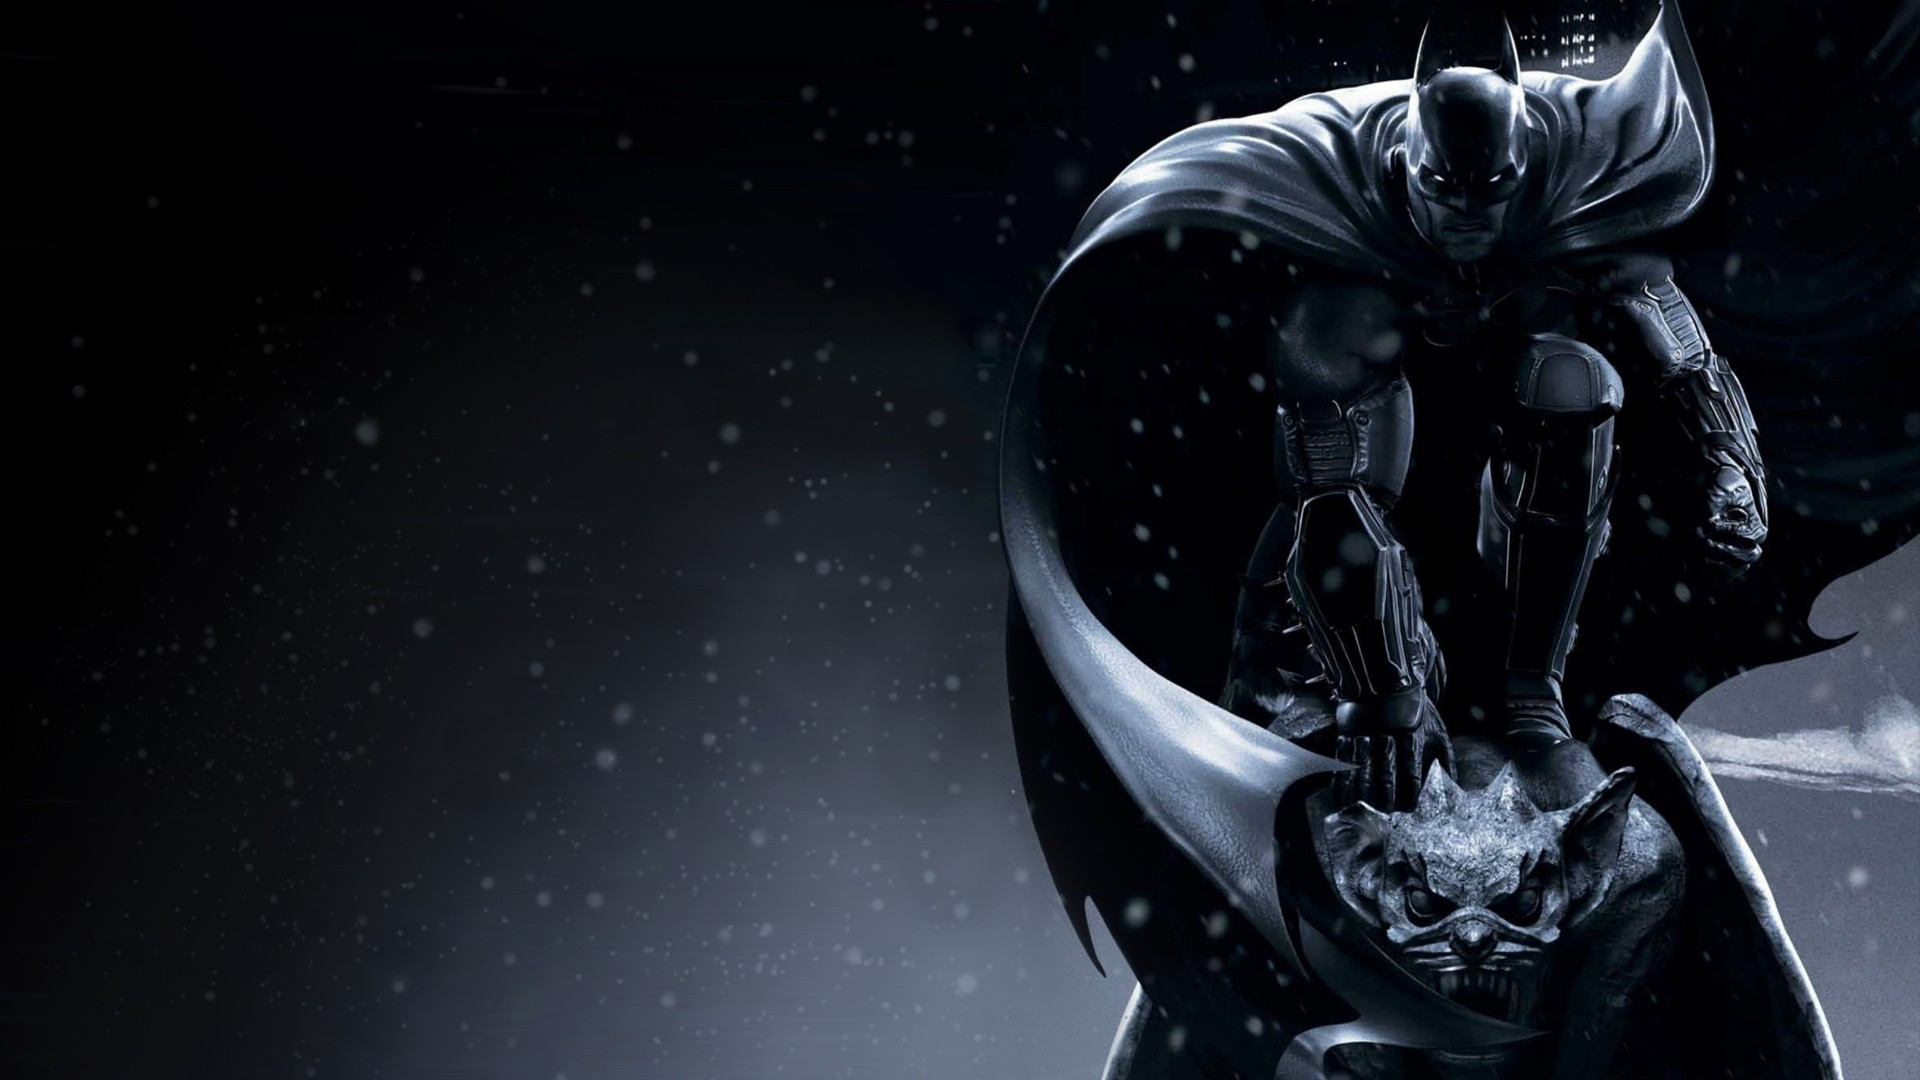 Batman Arkham Origins 2013 553.63 Kb